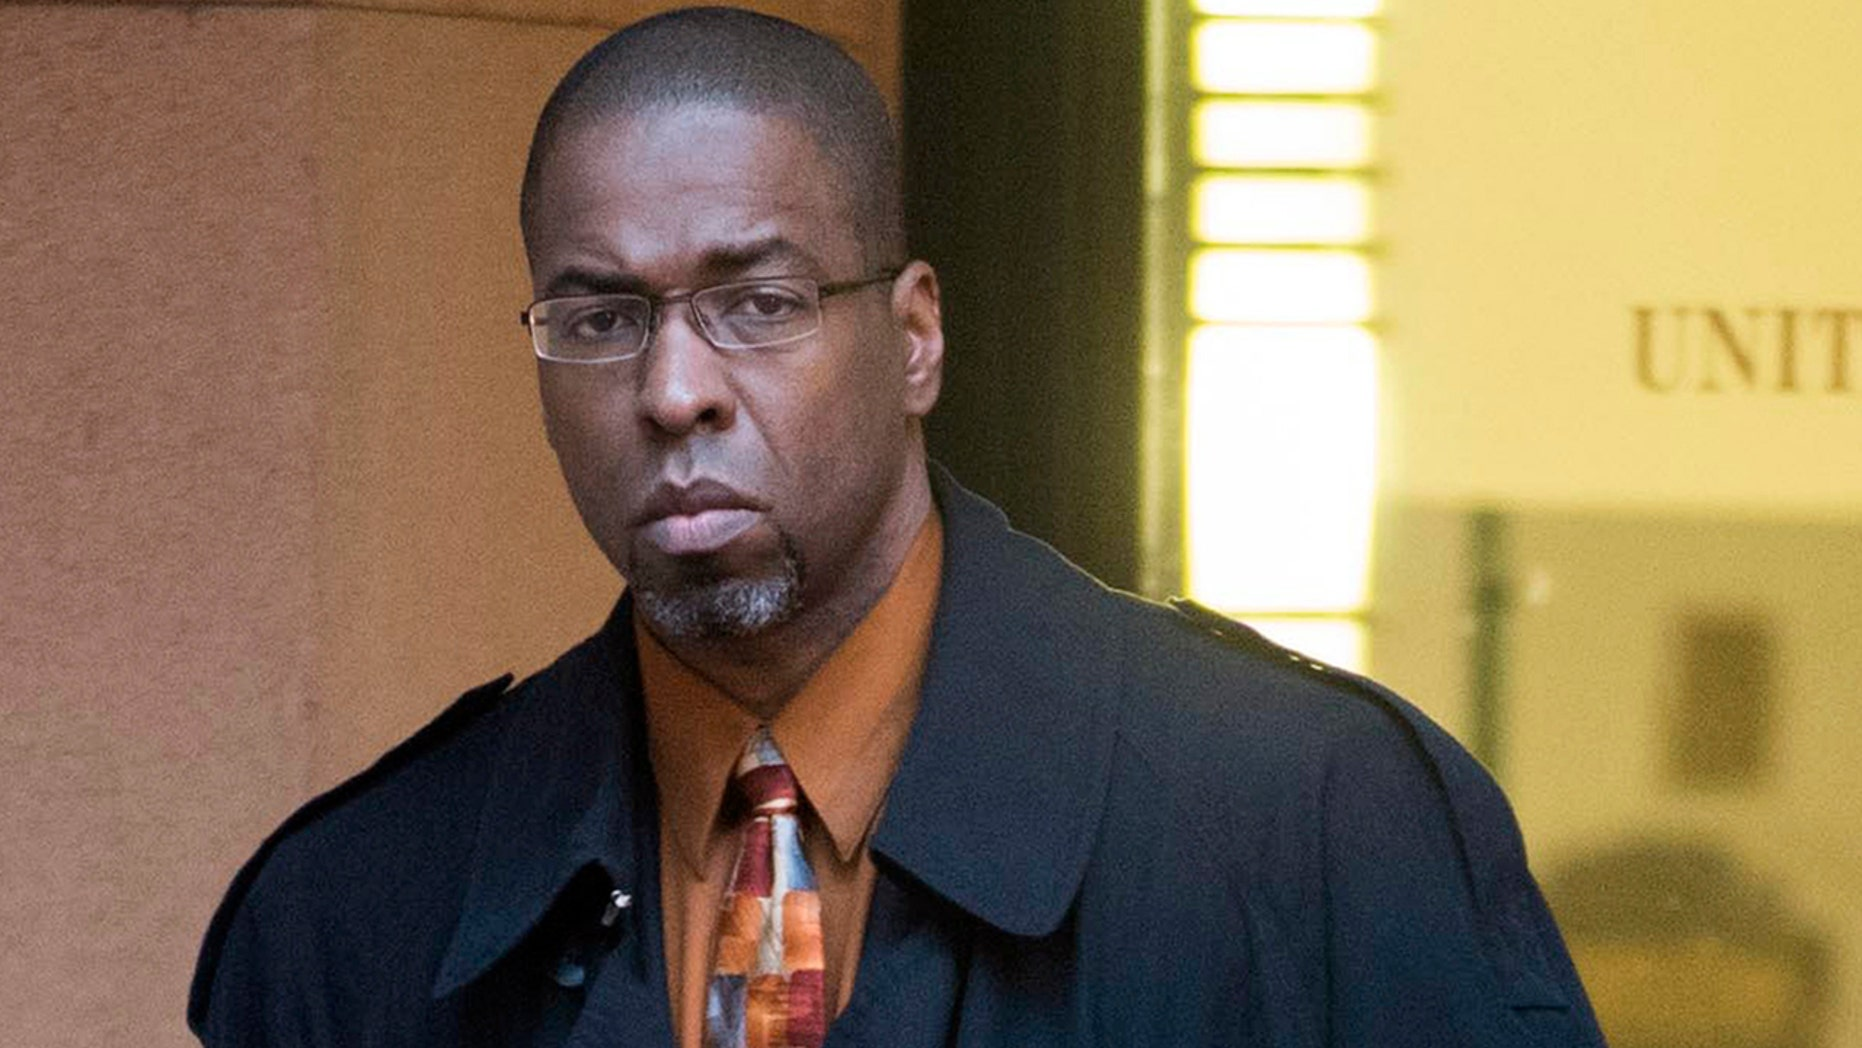 Jeffrey Sterling is a former CIA officer who was sentenced to more than three years in prison for leaking classified information to a New York Times reporter.